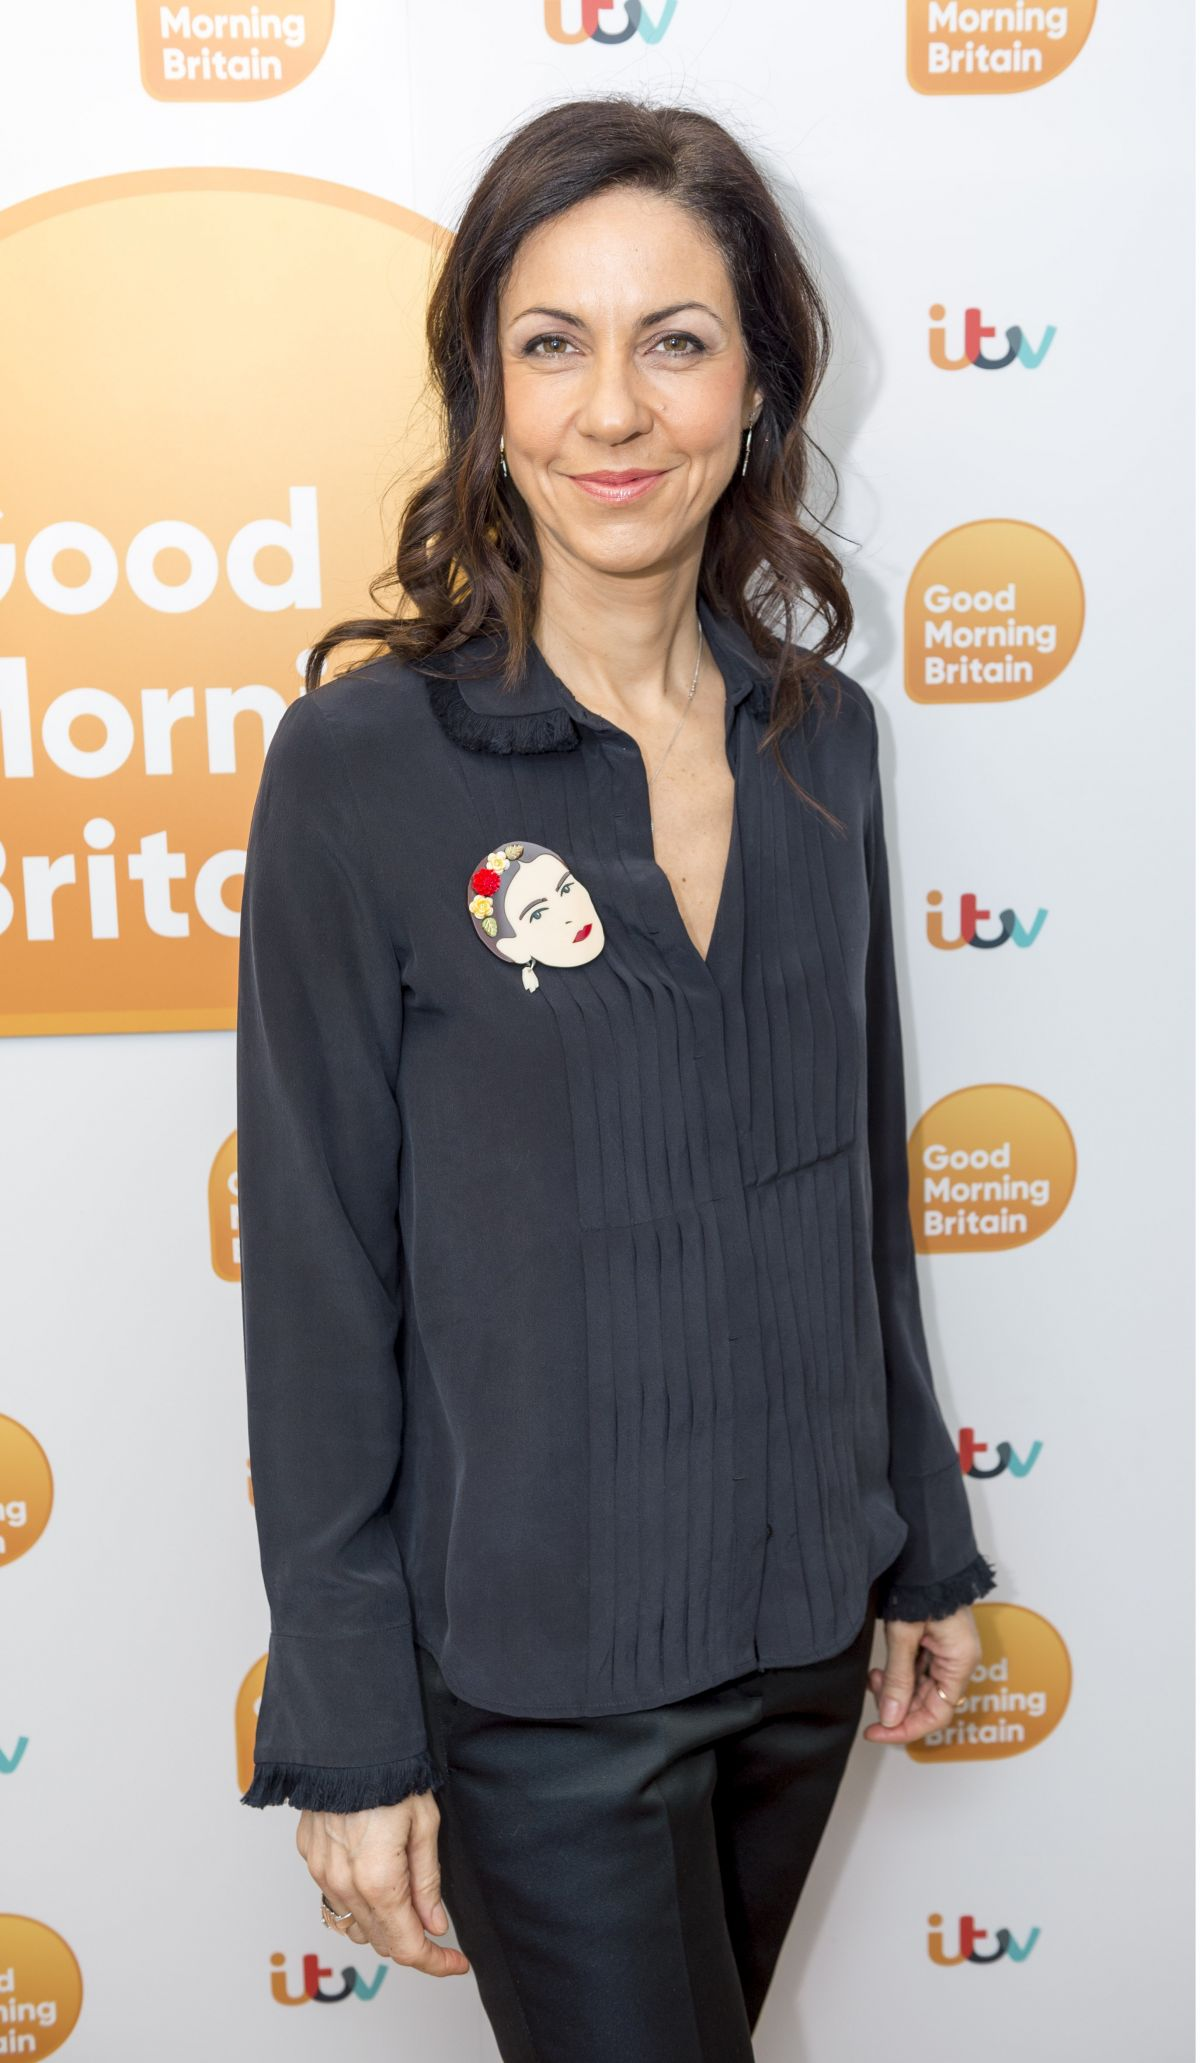 JULIA BRADBURY at Good Morning Britain in London 01/30 ...